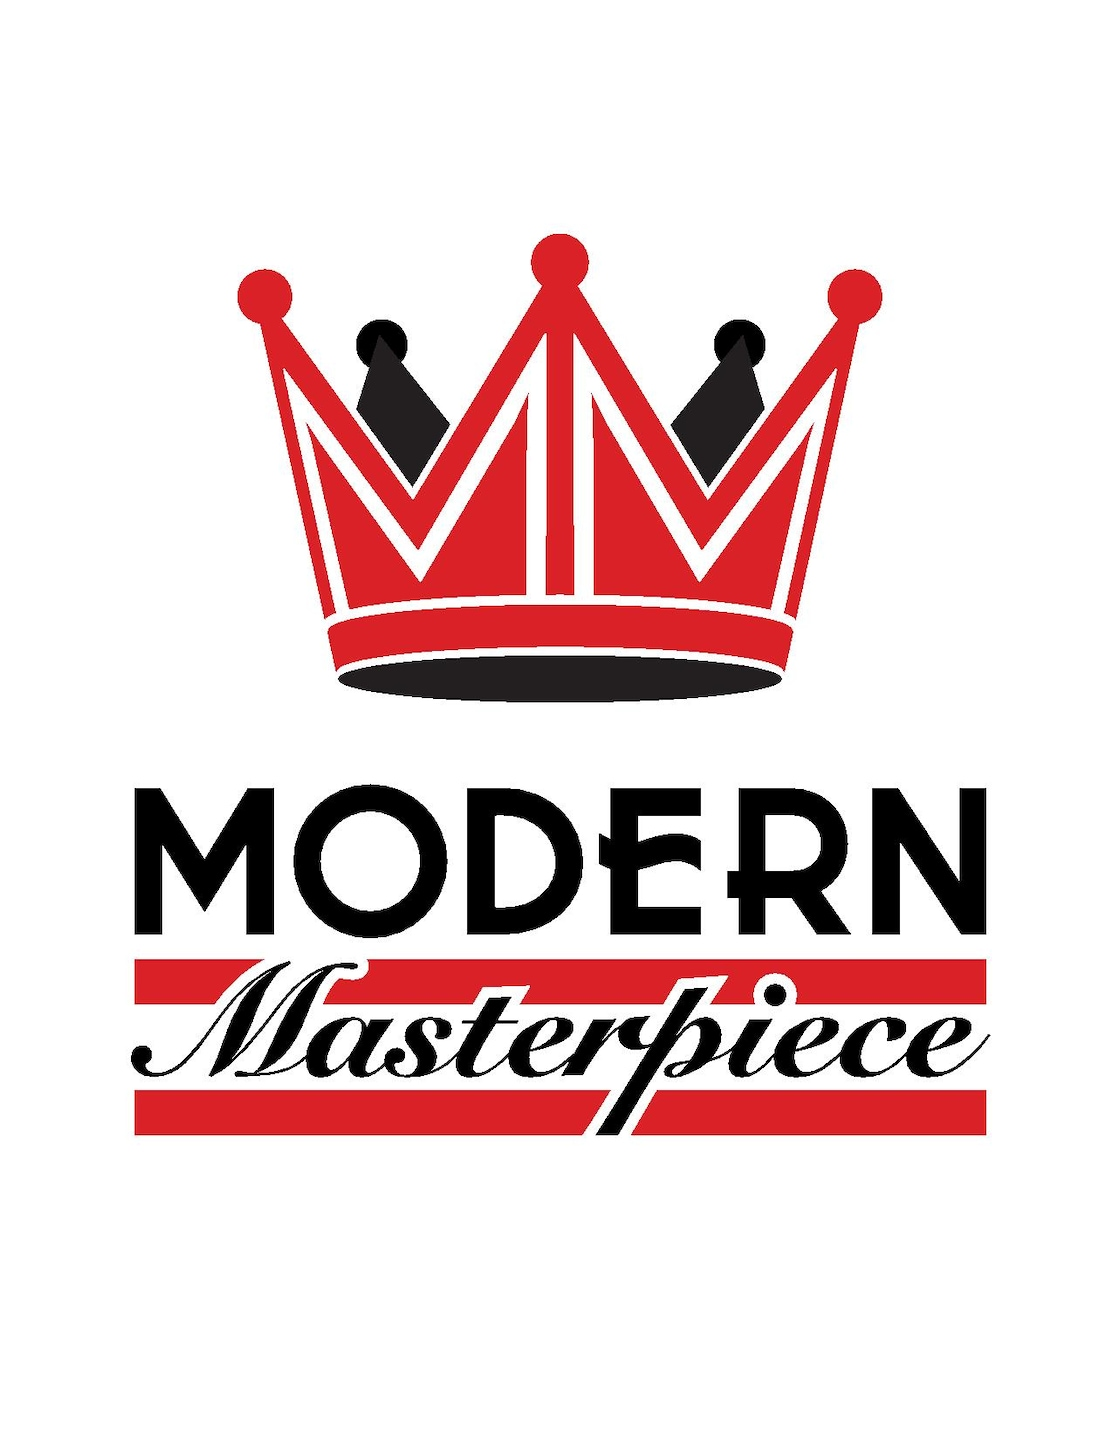 Modern Masterpiece LLC